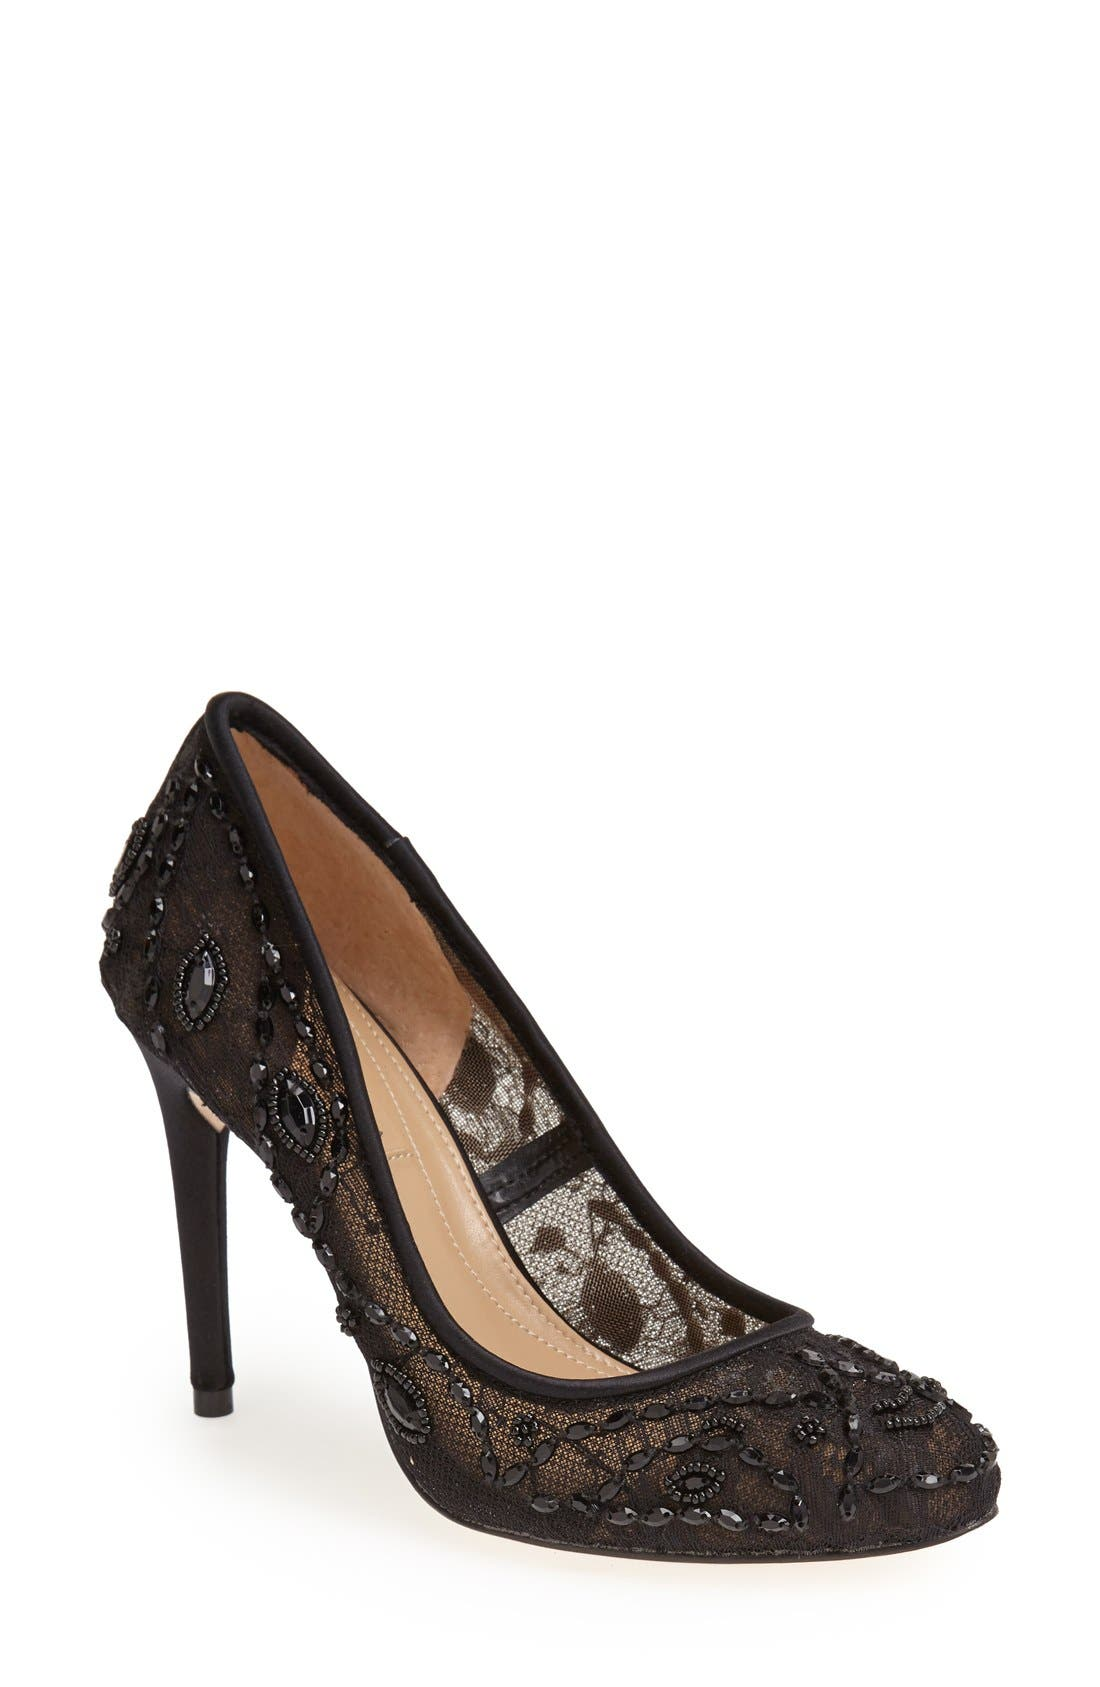 Main Image - BCBGMAXAZRIA 'Bettie' Pump (Women)